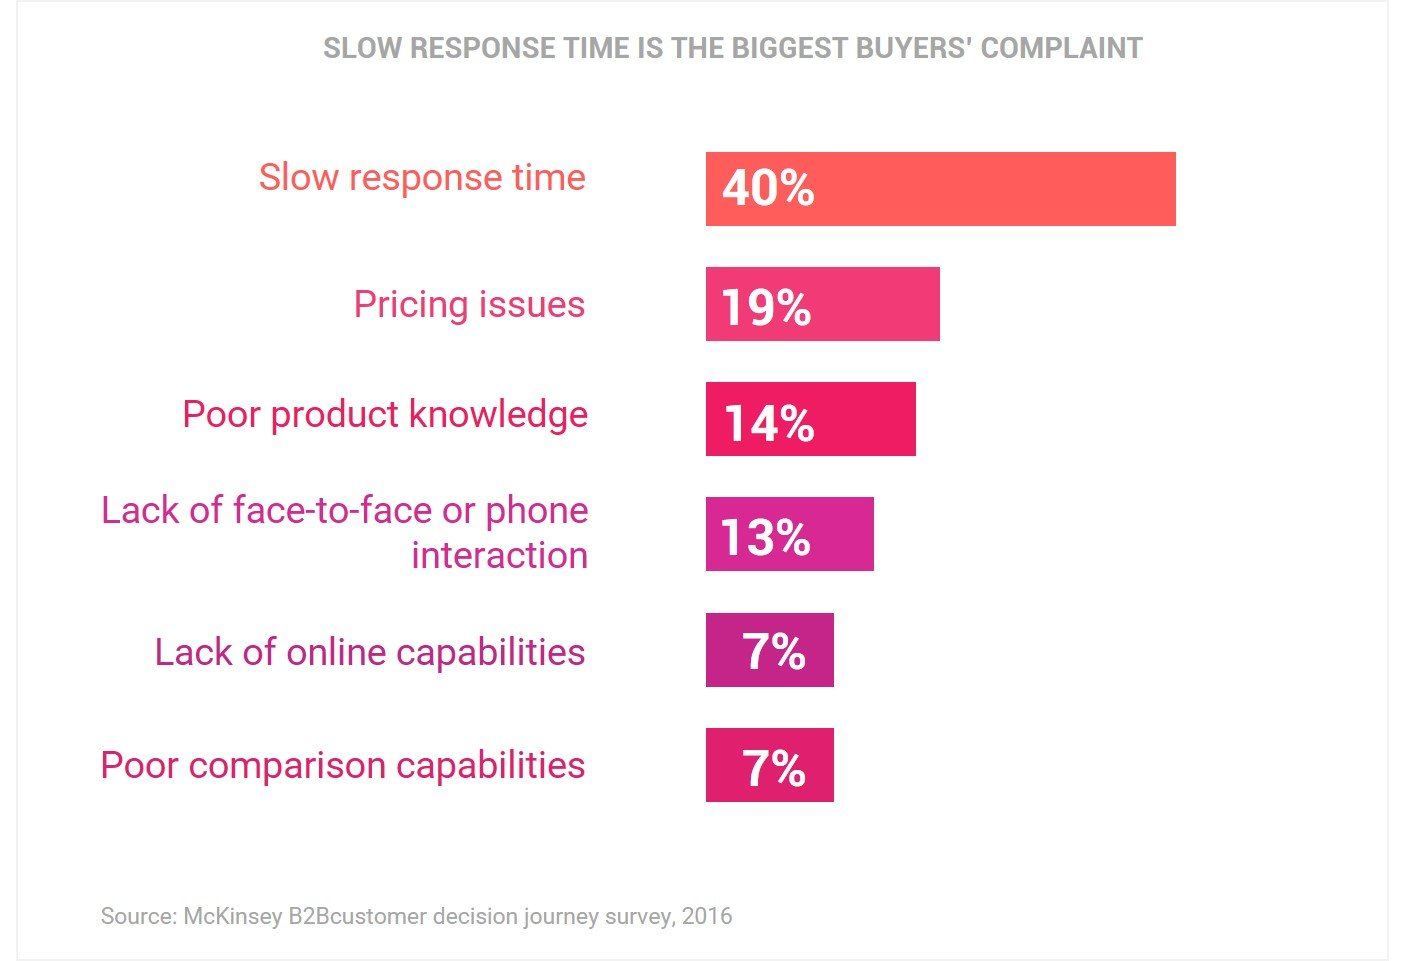 SLOW RESPONSE TIME IS THE BIGGEST BUYERS' COMPLAINT